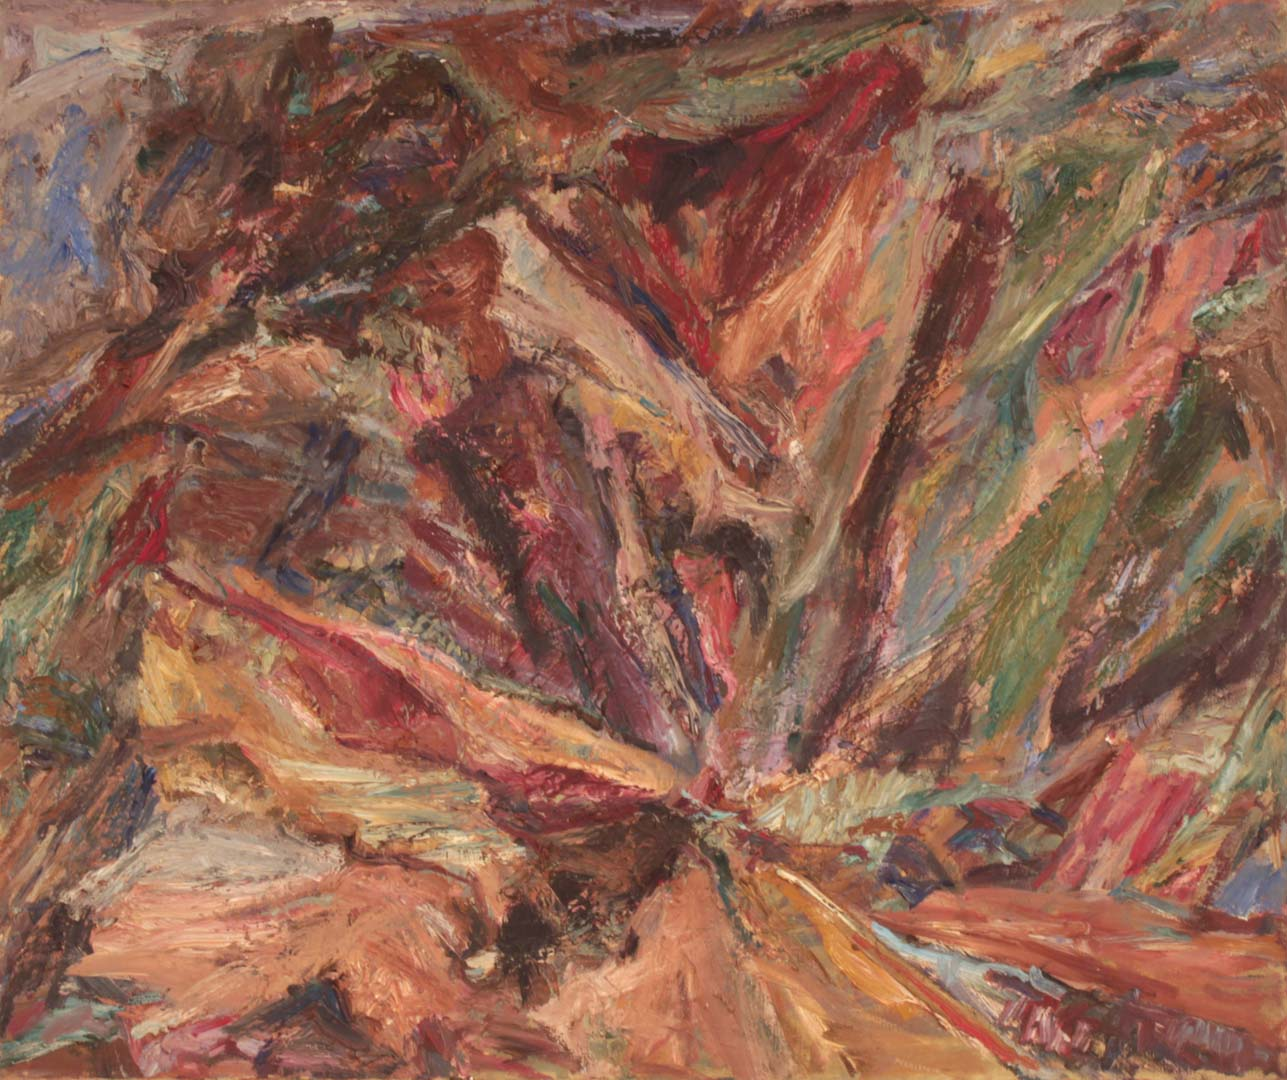 1955 Ravine and Crest Oil on Canvas 36 x 40